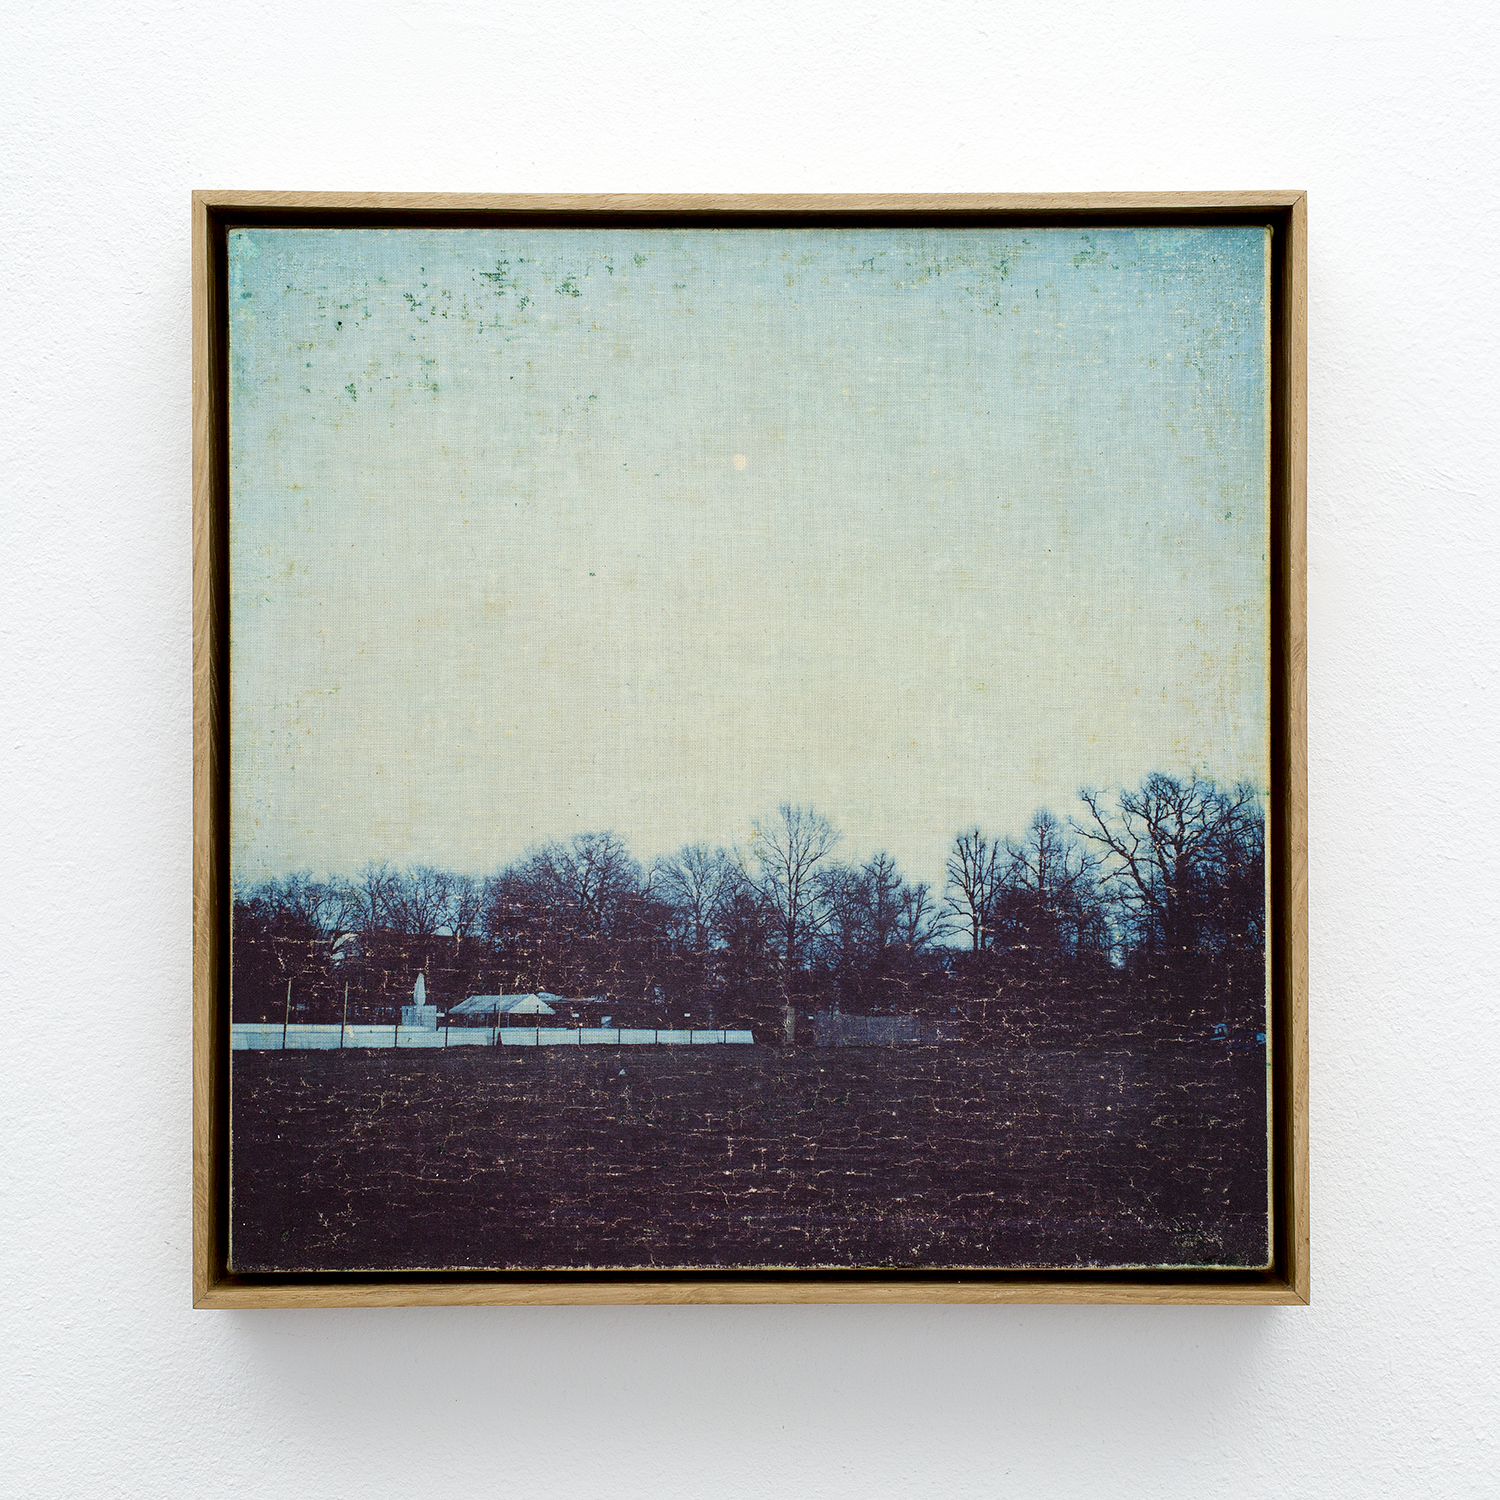 Memory of Others, 2018, transferred image on canvas, wood. 28.3 x 28.3 cm